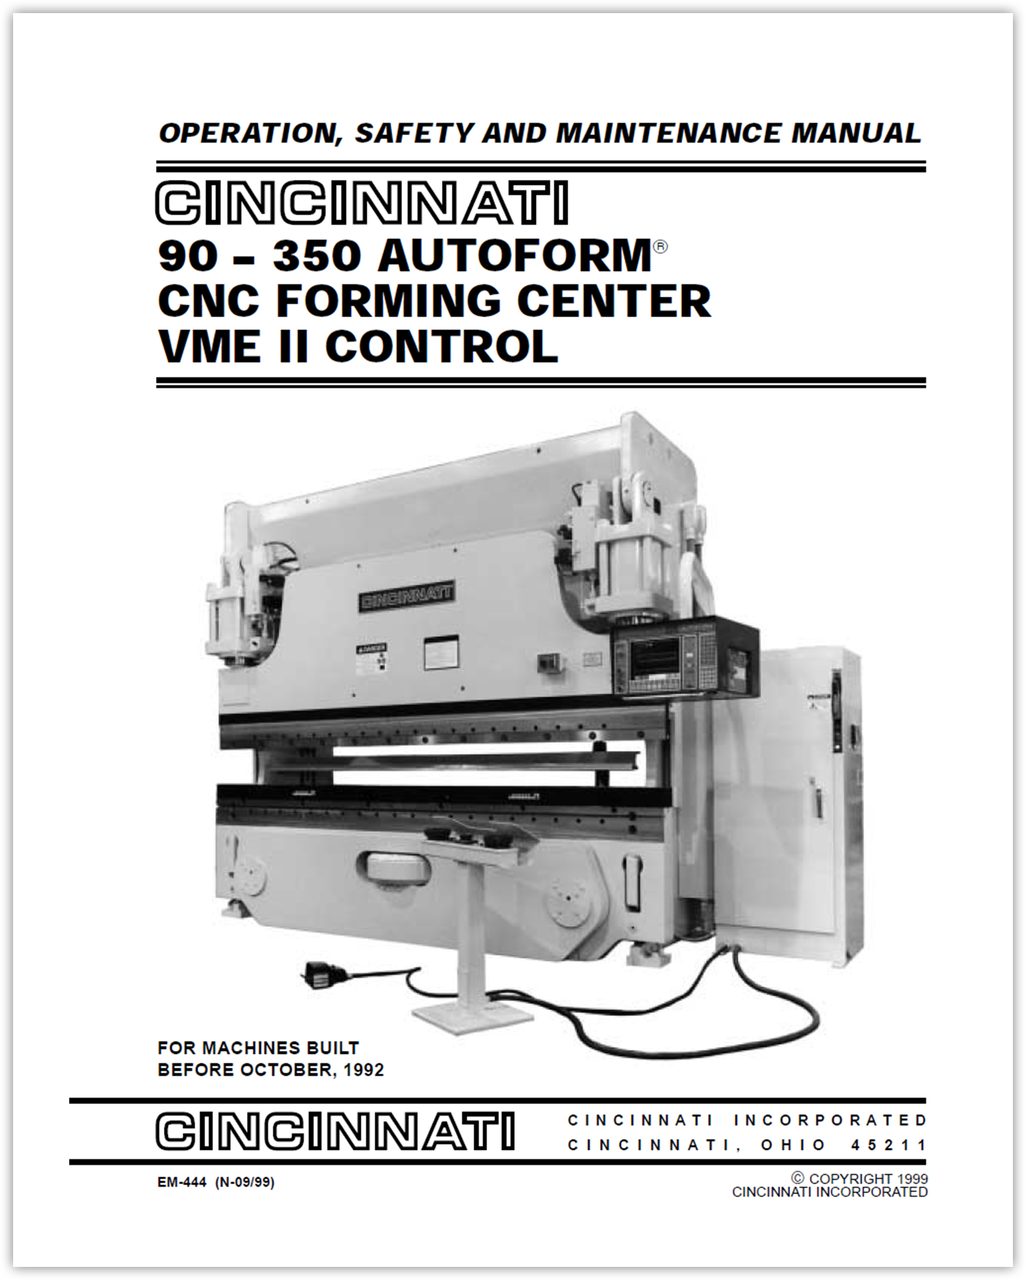 EM-444 (N-09-99) 90-350 AUTOFORM CNC Forming Center VME II Control - Operation, Safety and Maintenance Manual for Machines Built Before October, 1992